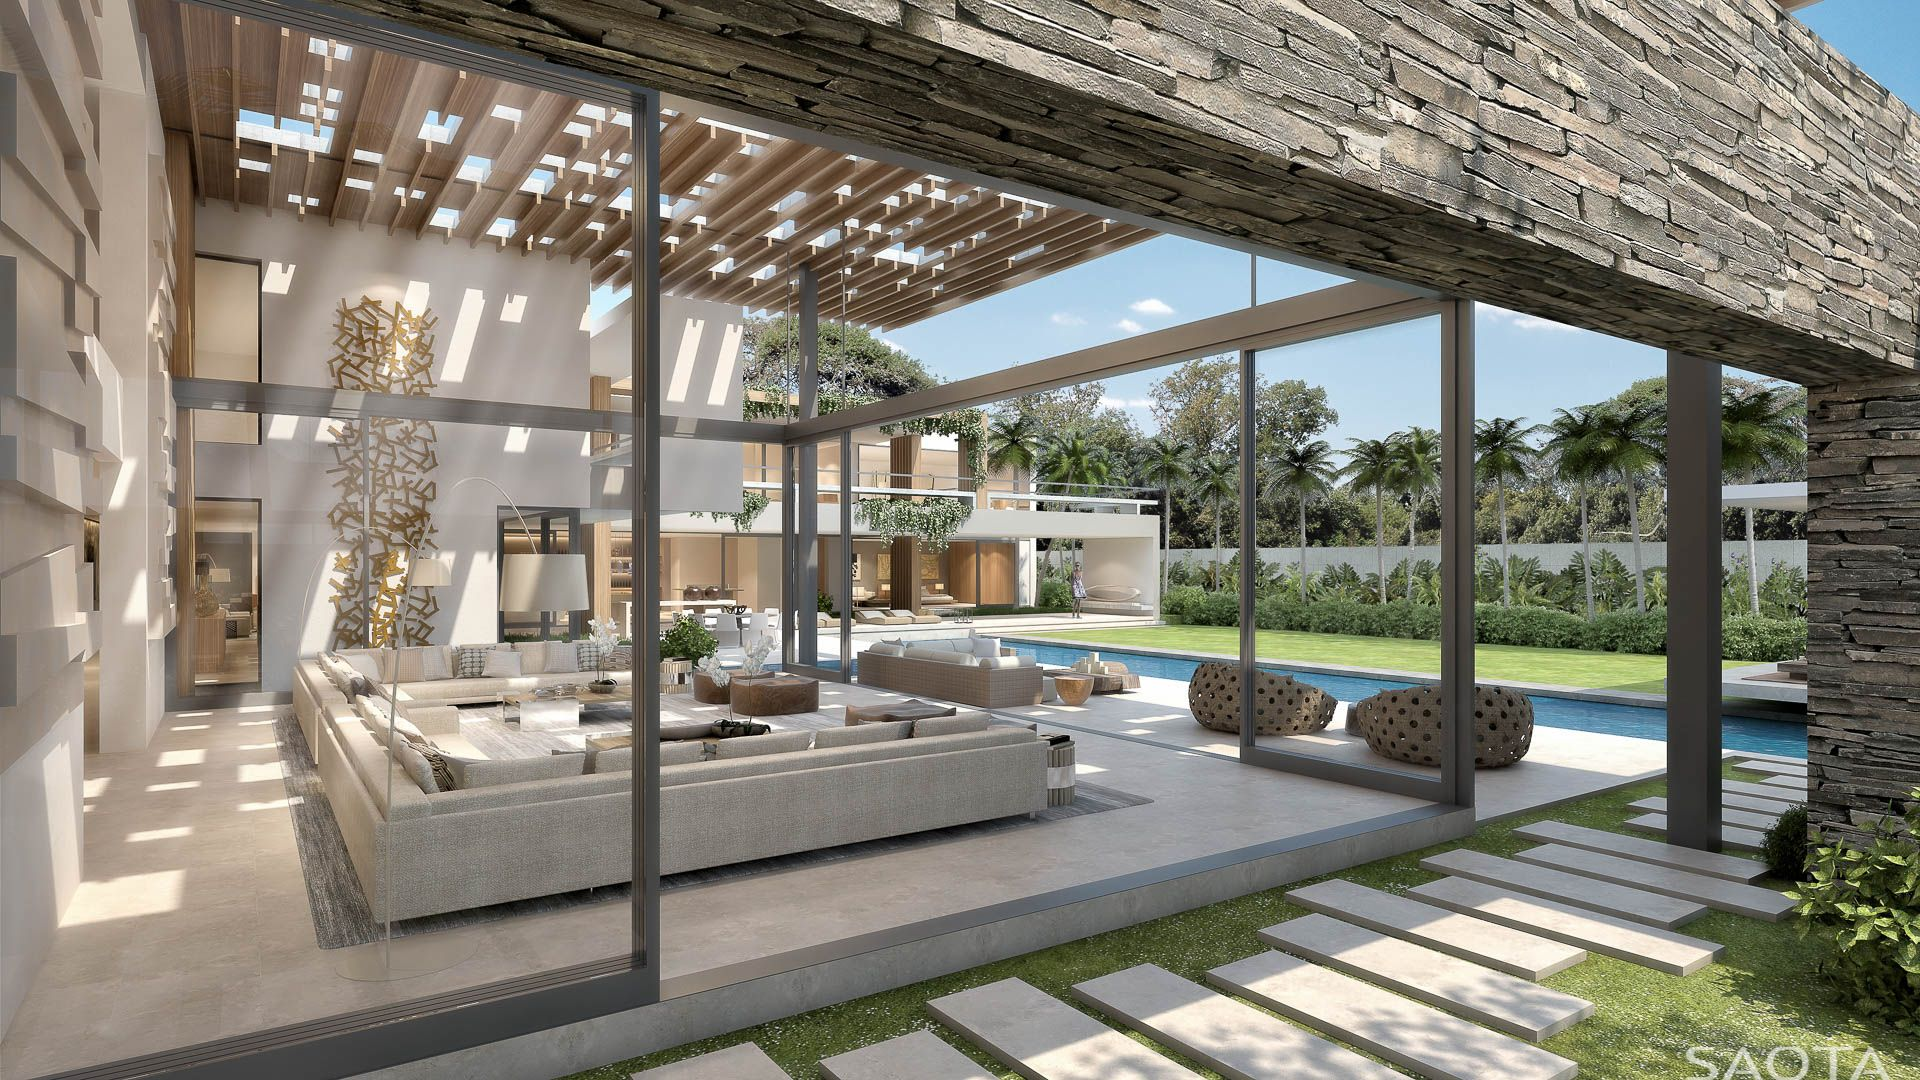 Modern luxury homes interior design - Find This Pin And More On Interiors